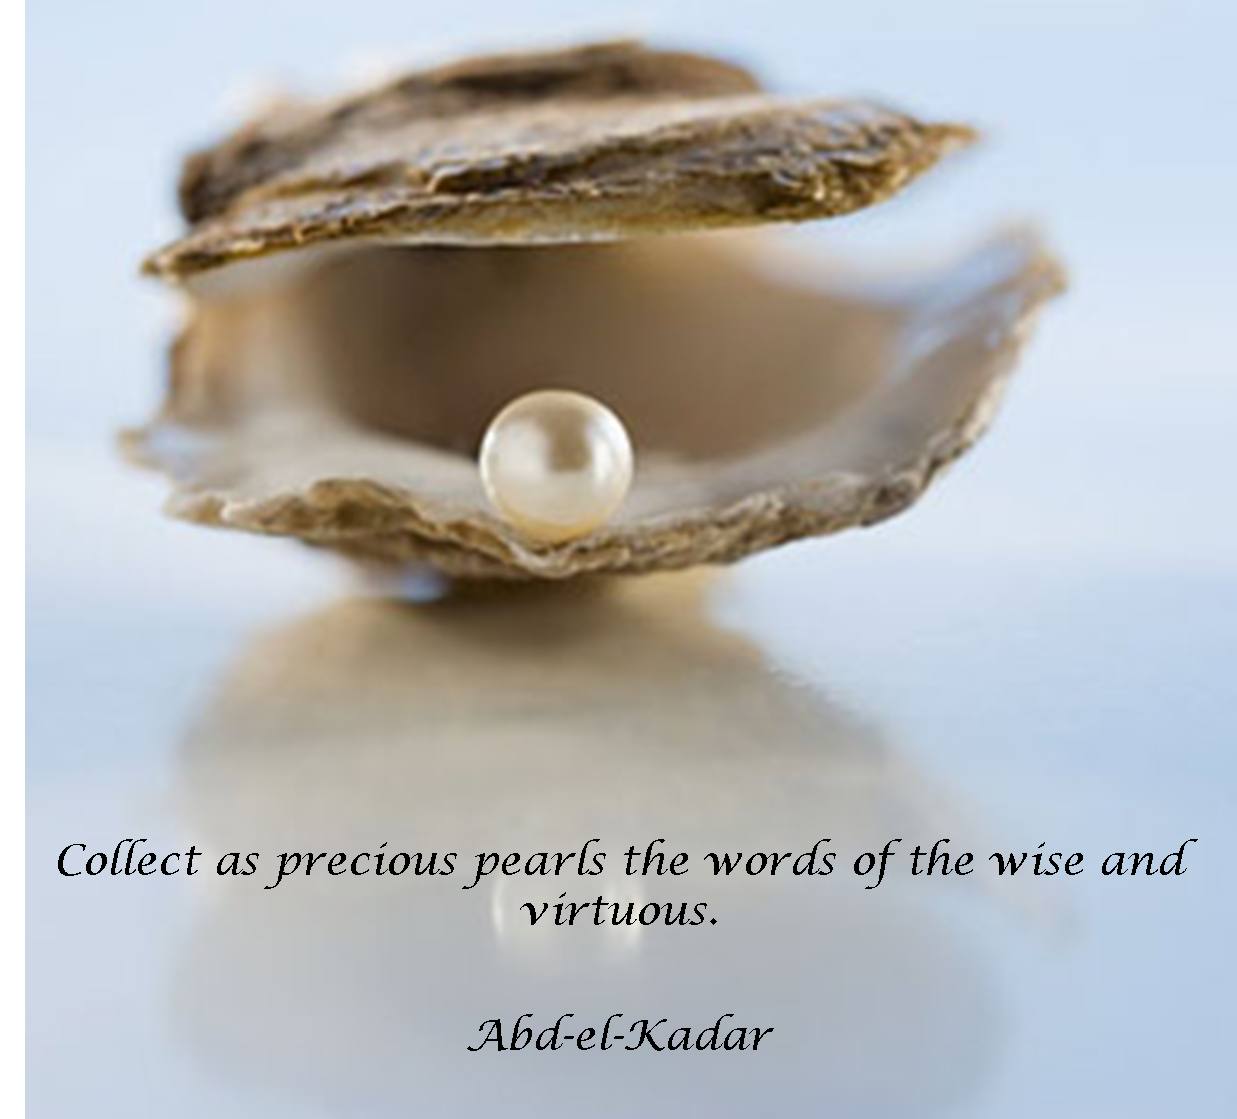 Quotes About Pearls And Friendship Classy Friendship Quotes About Pearls Best Pearl Quotes On Pearls Jewelry.